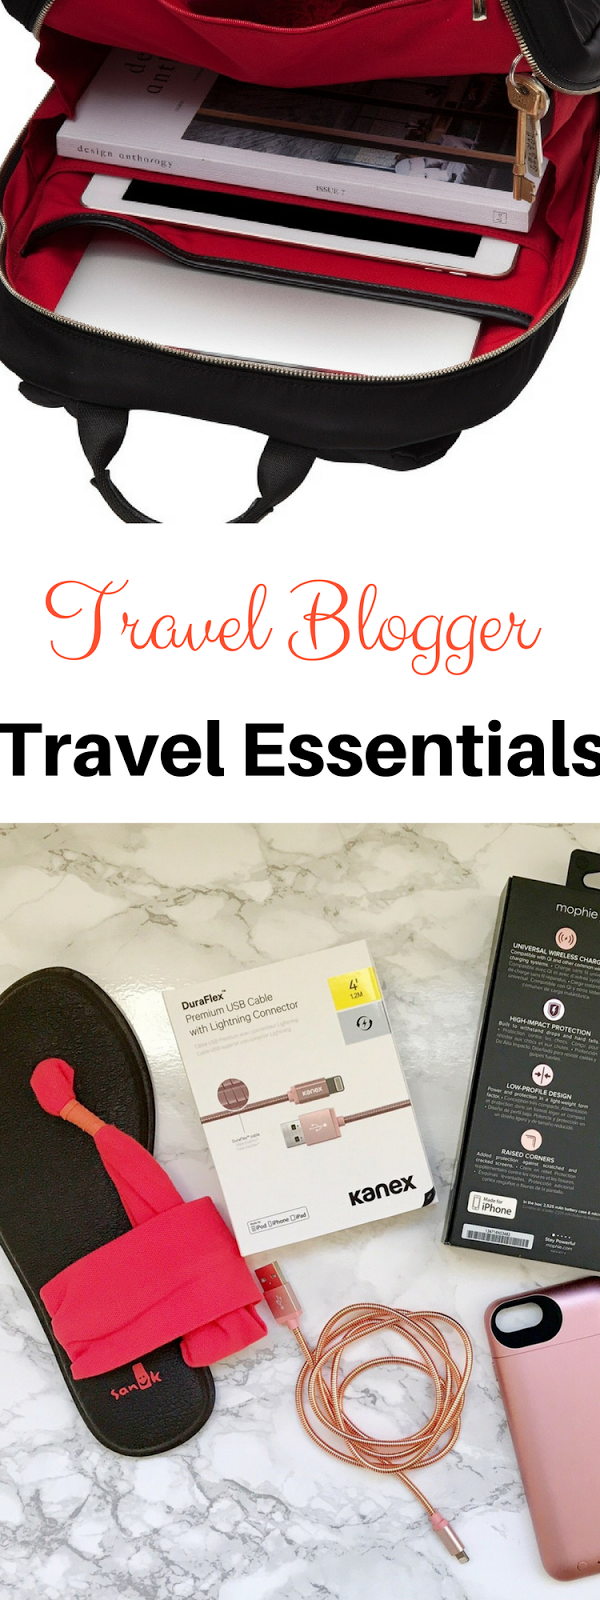 Travel Blogger's Travel Essentials